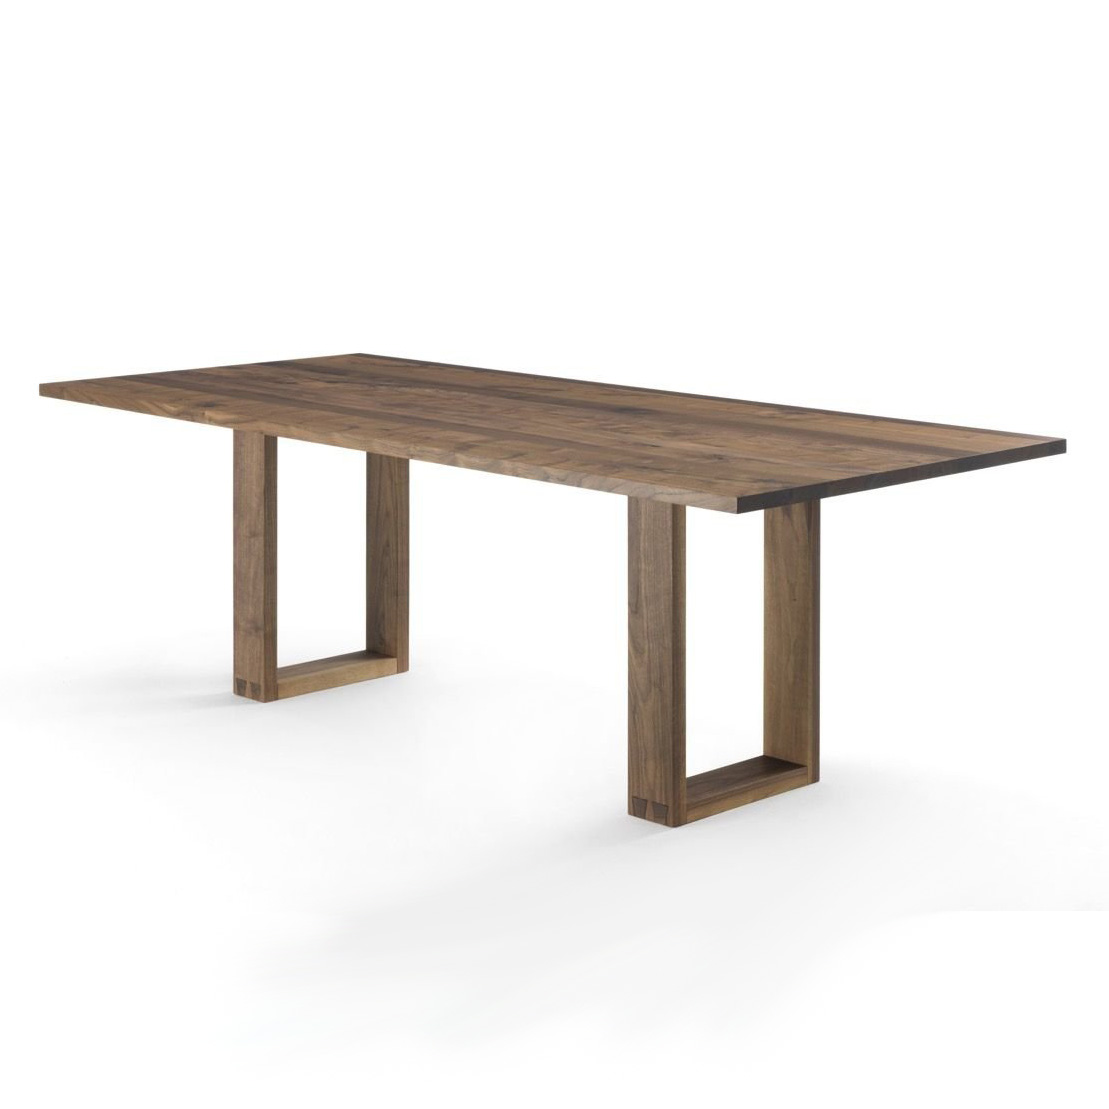 Dove dining table from Riva 1920